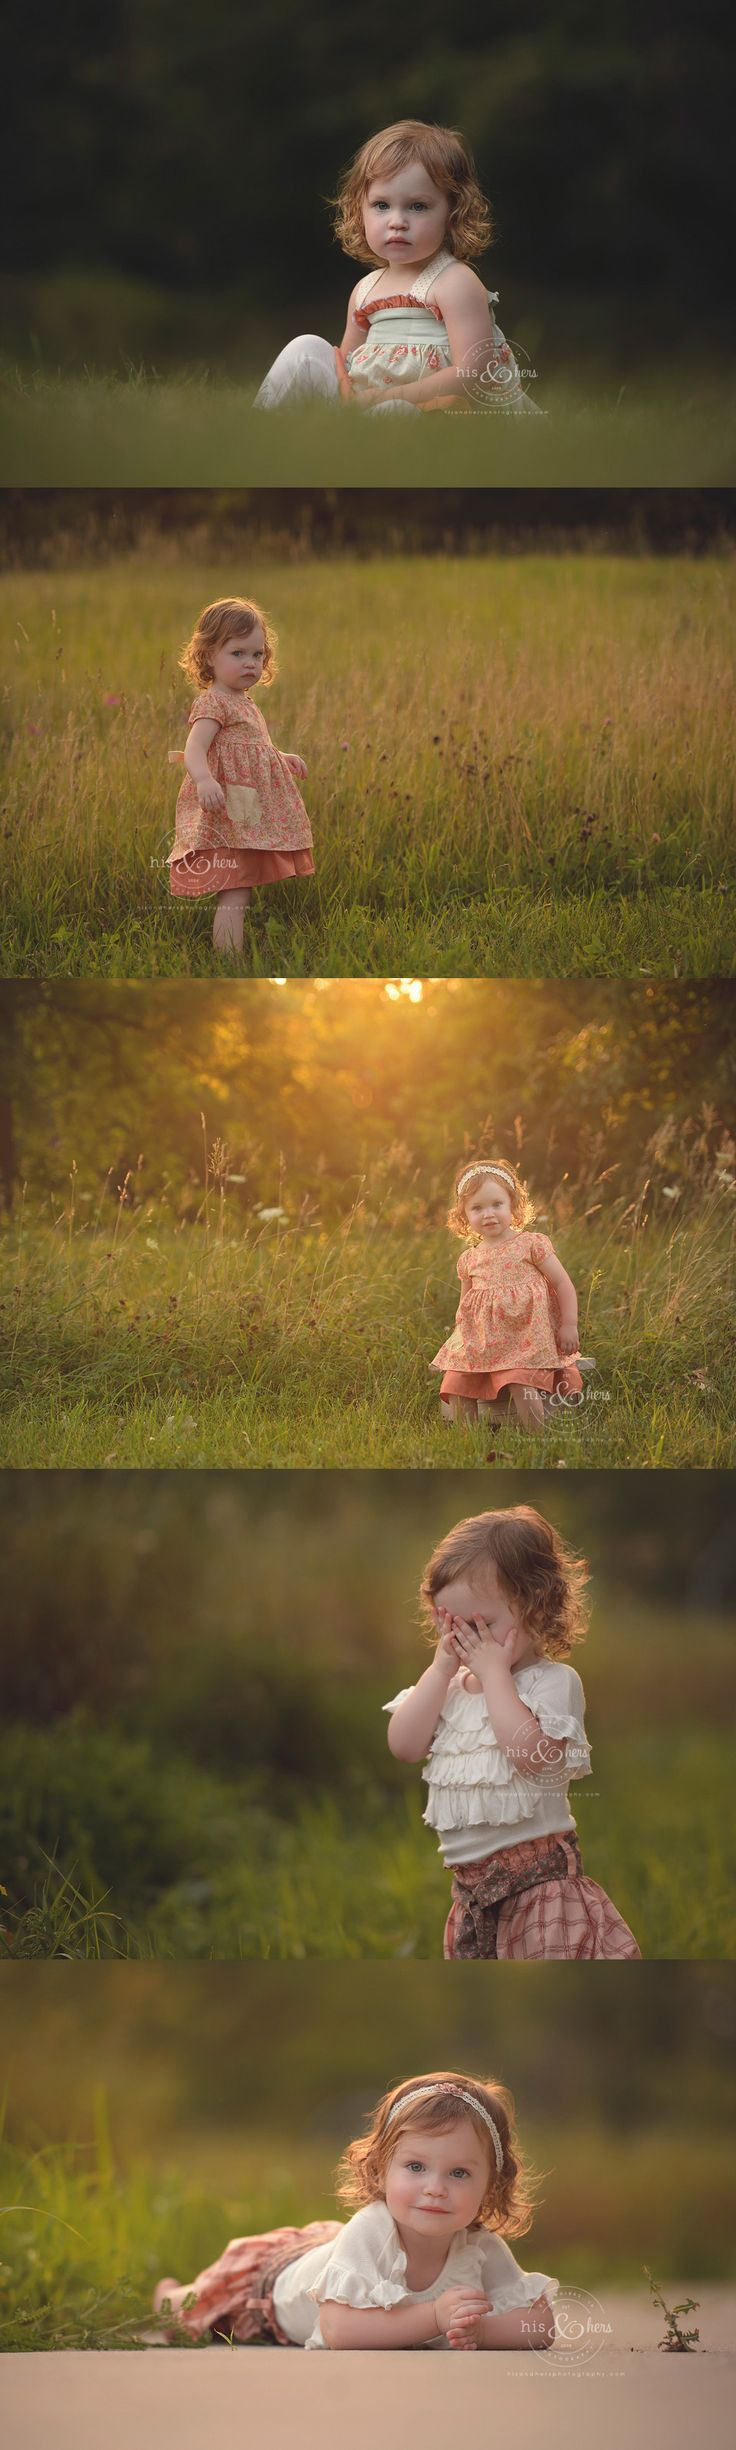 2 year old portrait session, Finley | Des Moines, Iowa child photographer, Darcy Milder | His & Hers